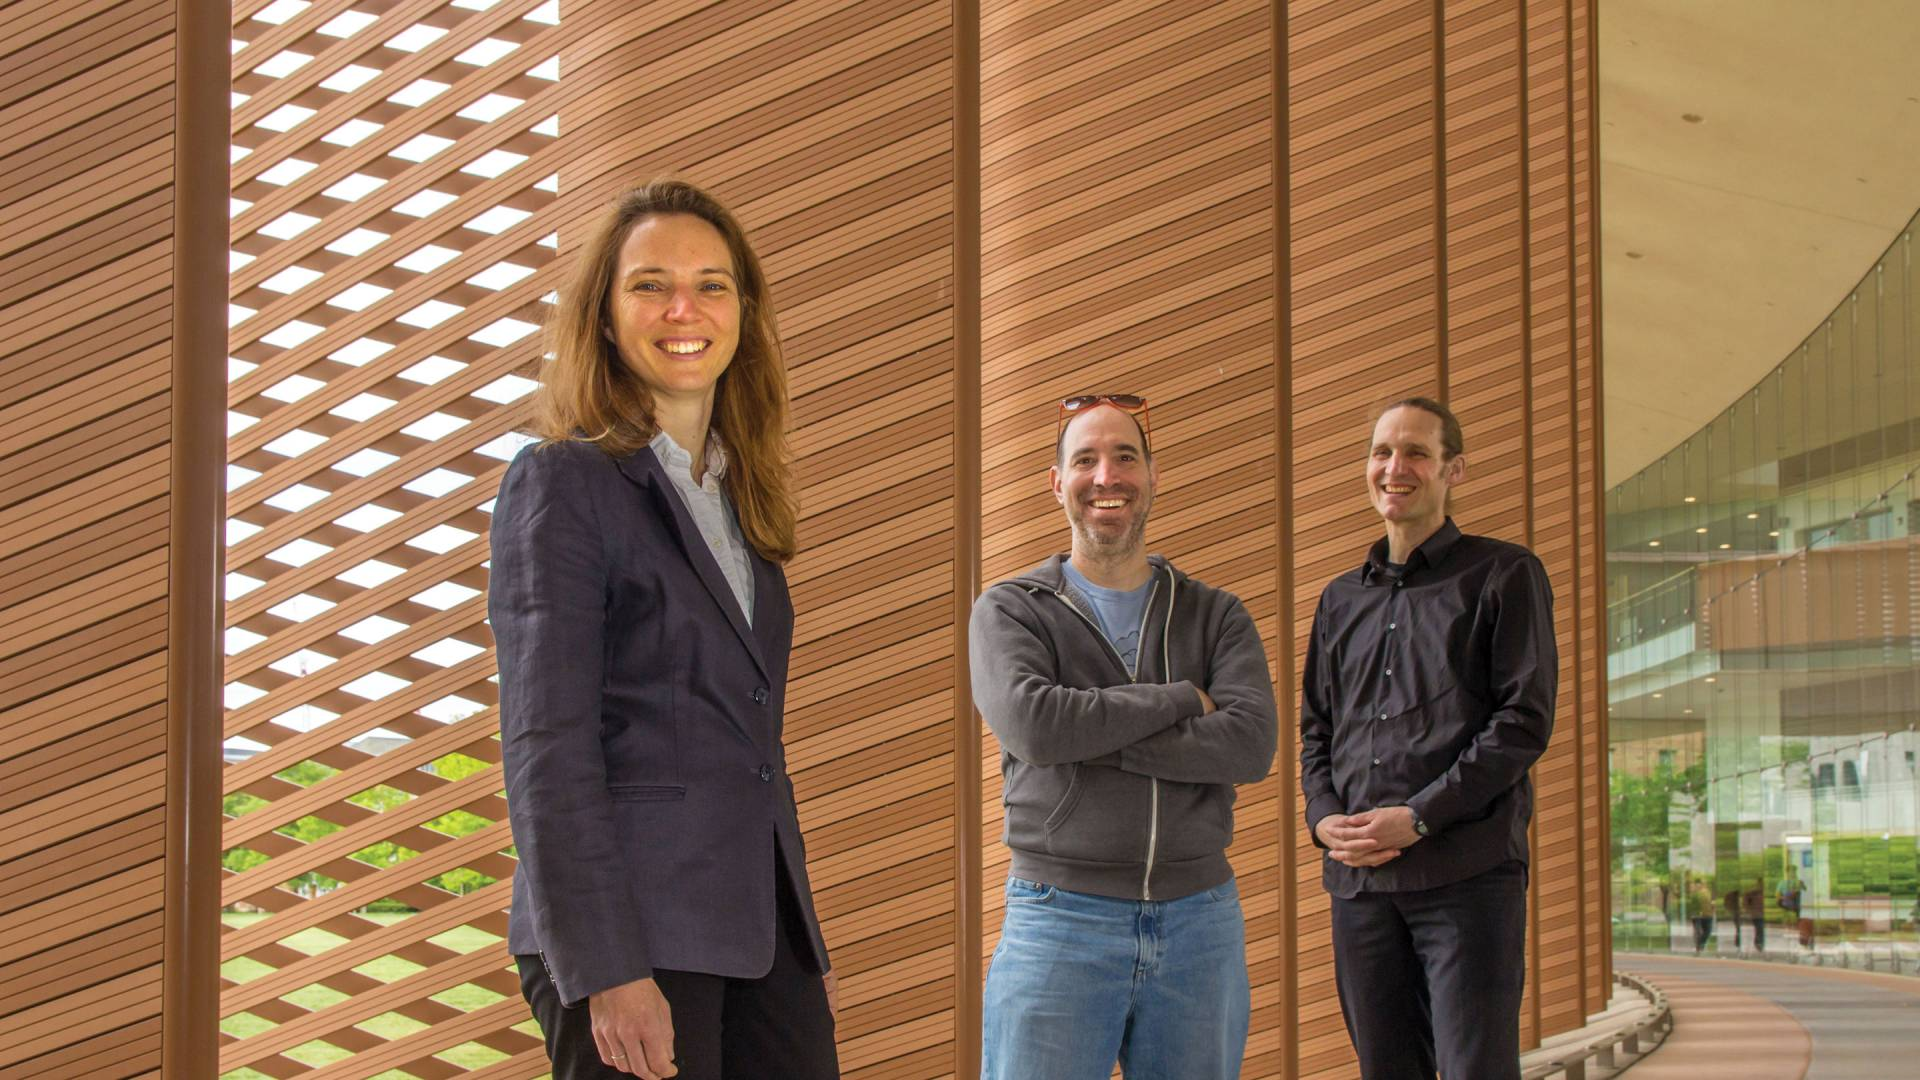 From left to right, Sigrid Adriaenssens of civil and environmental engineering, Adam Finkelstein of computer science and Axel Kilian of architecture are collaborating on novel ways to control the interaction of light and buildings to save energy.